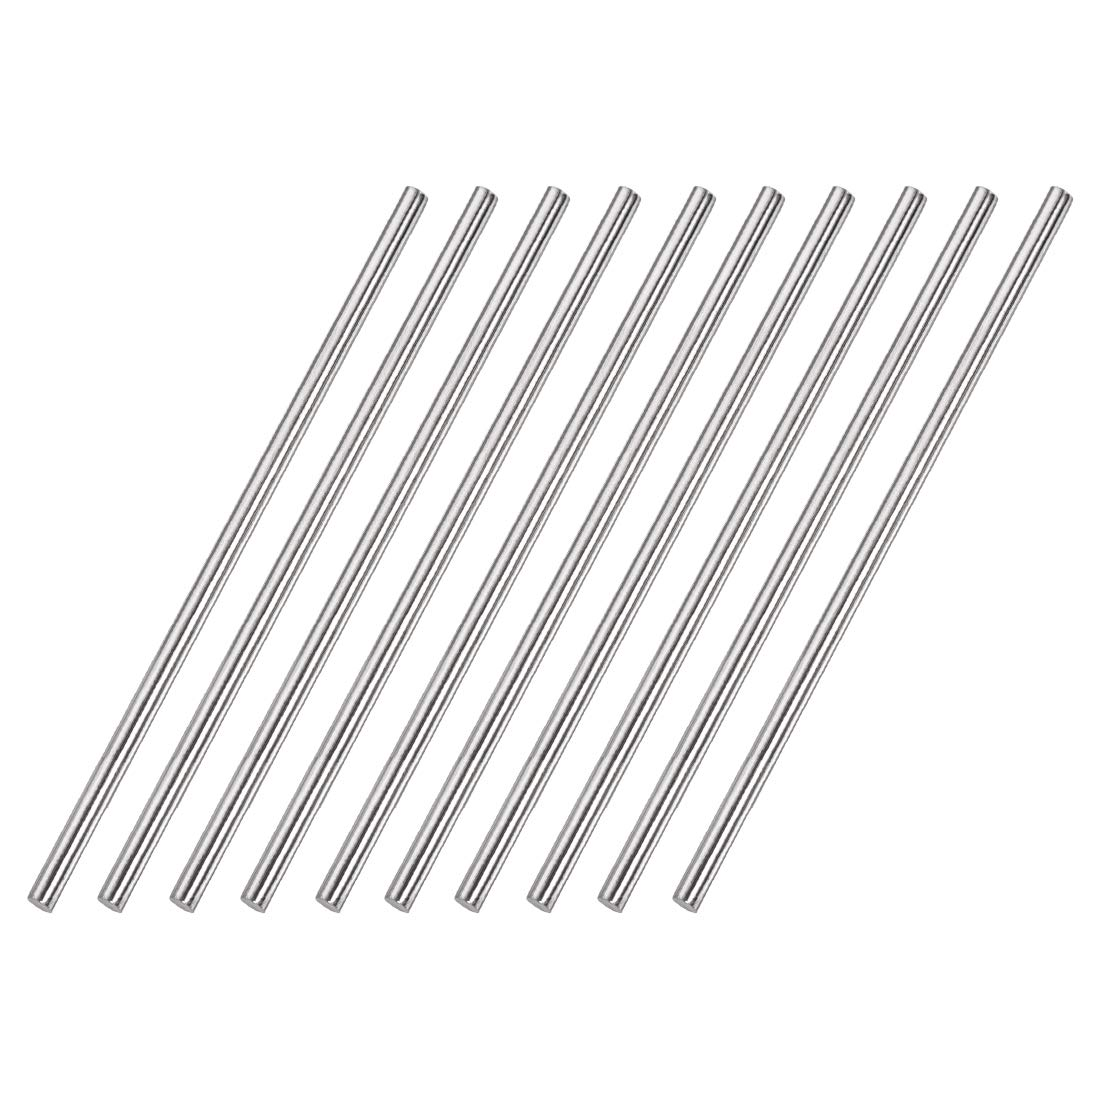 10pcs uxcell 4mm x 100mm 304 Stainless Steel Solid Round Rod for DIY Craft